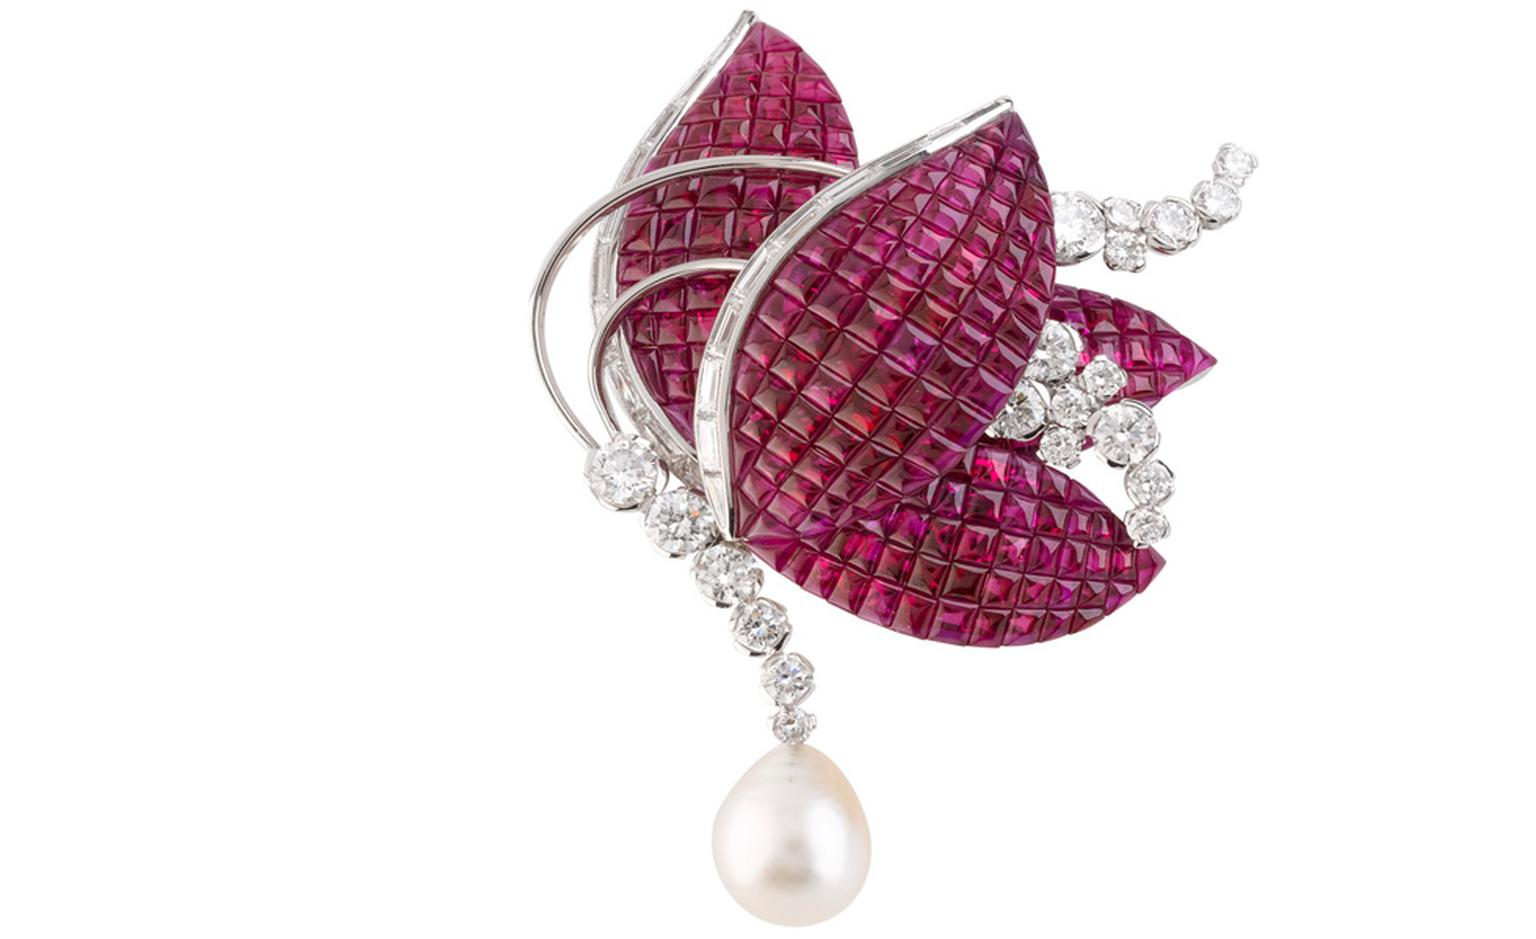 Van Cleef & Arpels Amarylis mystery-set rub, diamond and pearl butterfly brooch